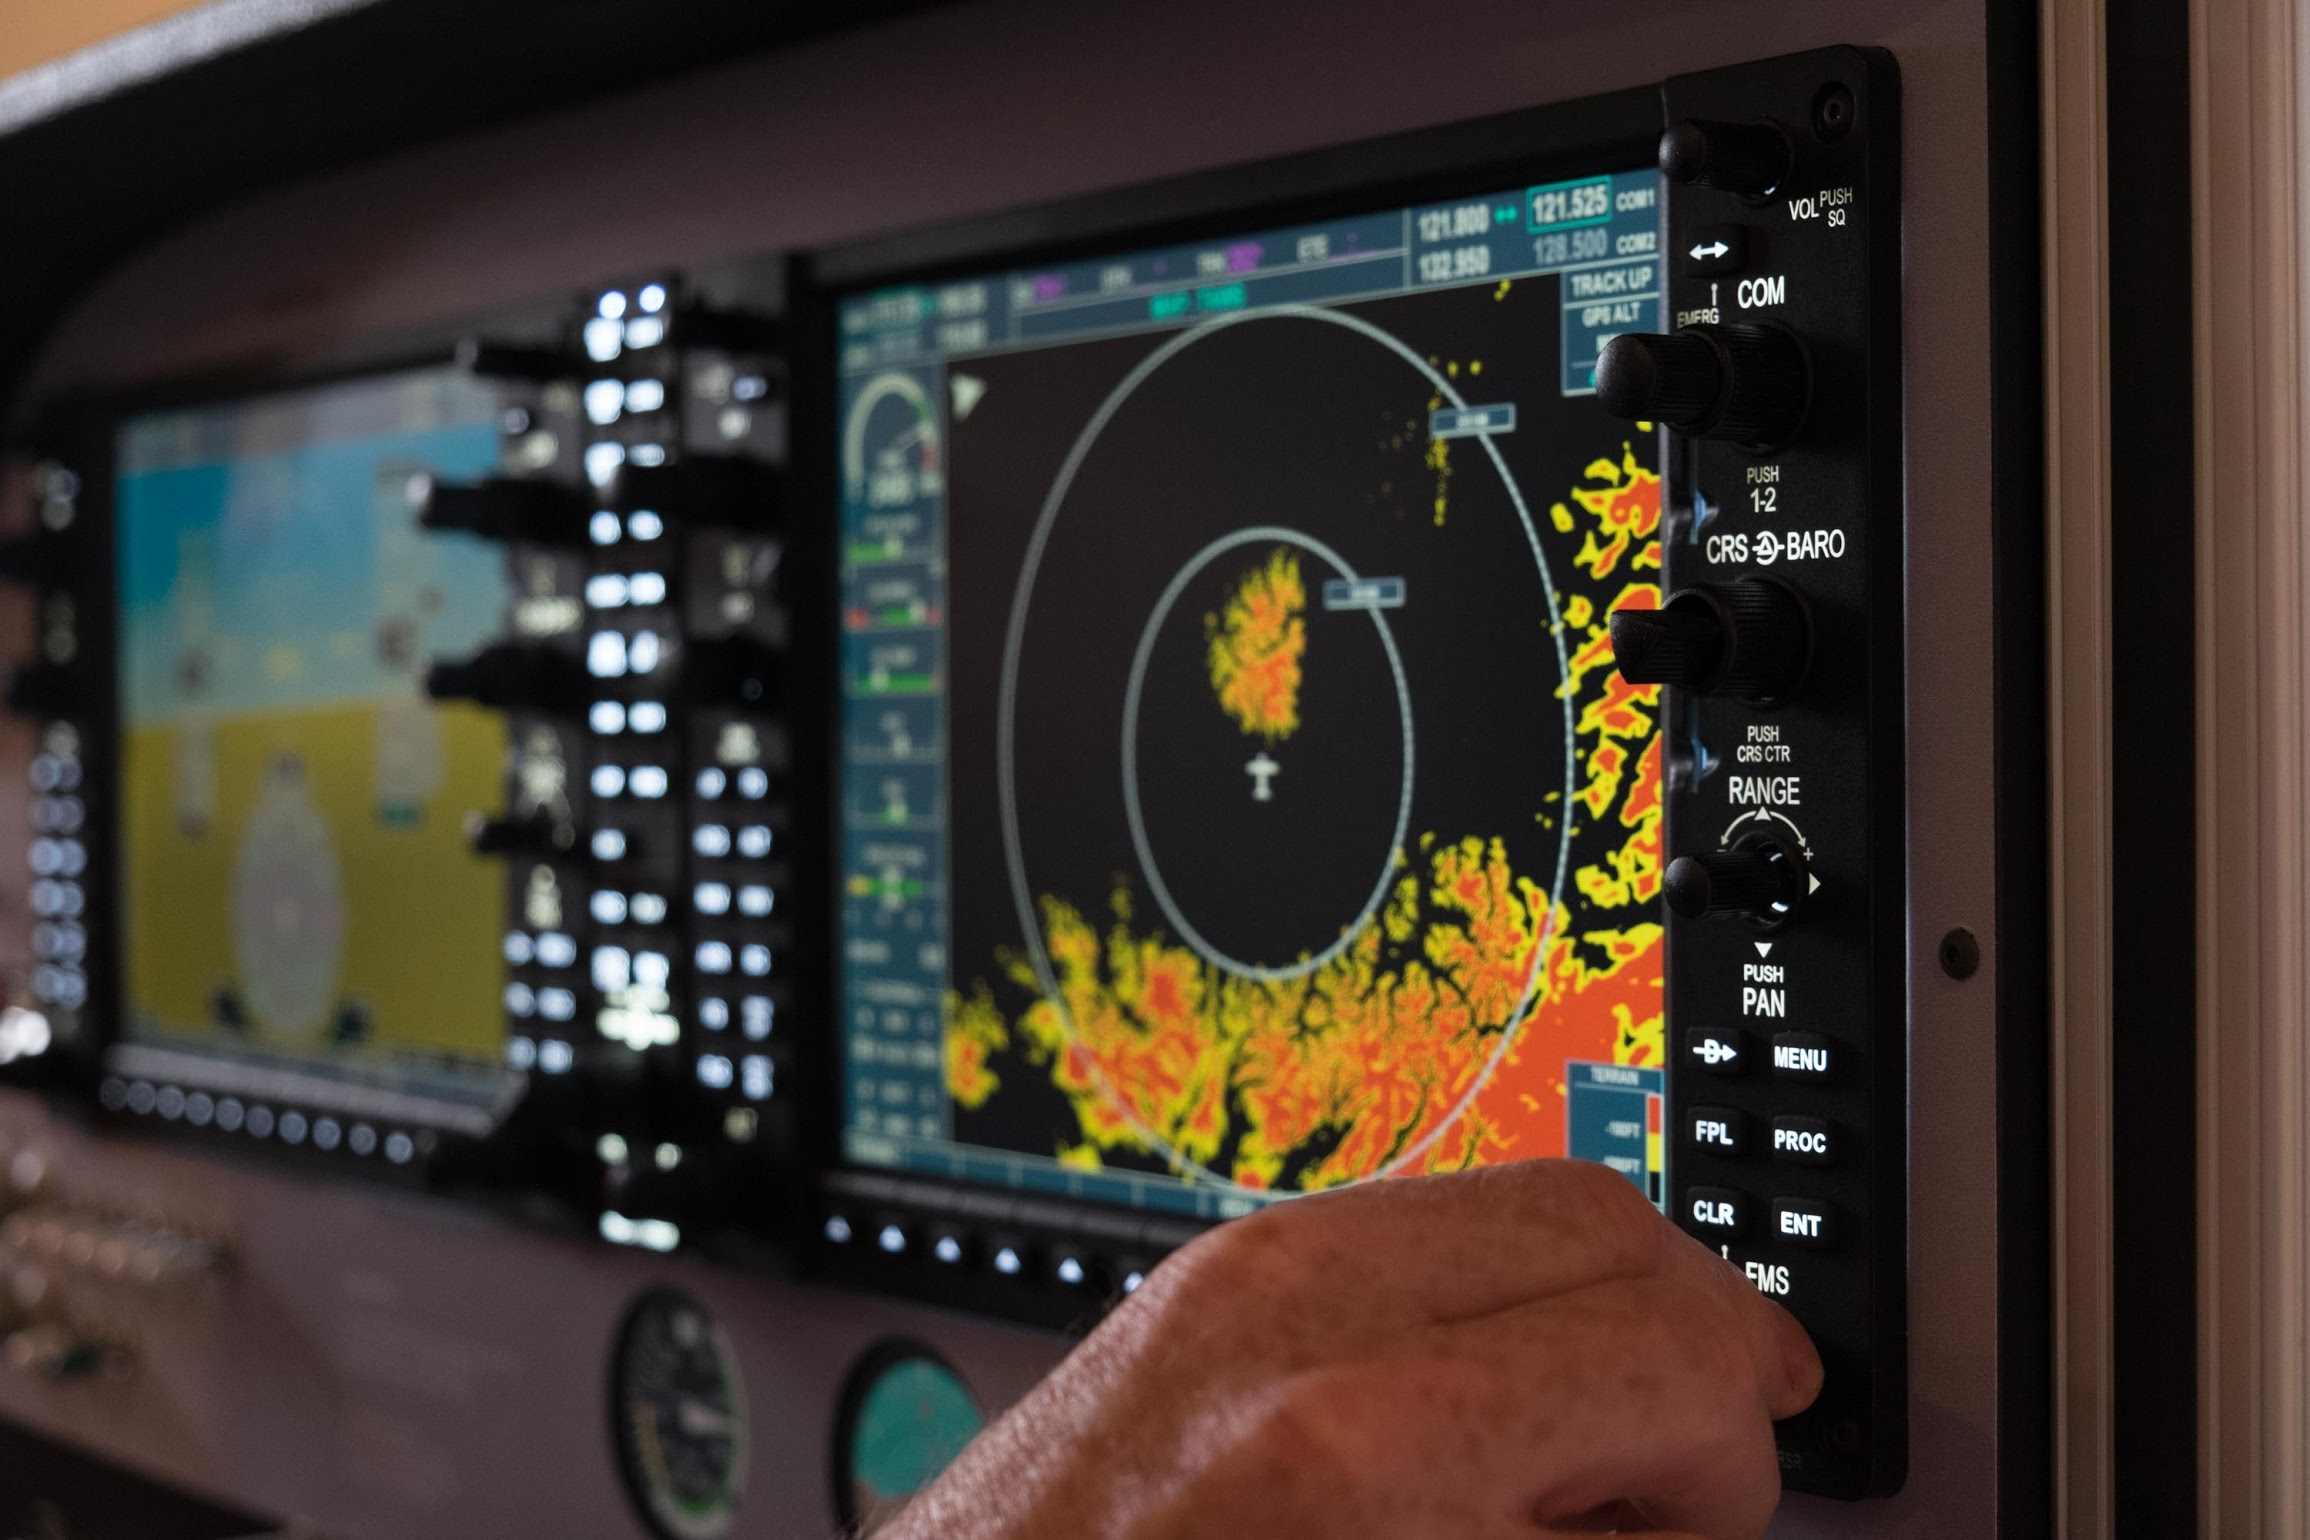 Glass Panel Systems - 1G-1000The best G1000 emulator available.1G-600A faithful representation of the Garmin G600.1G-EFIS 40/50A fully featured emulation of the Bendix/King Electronic Flight Instrumentation System.1G-CP467Remote EFIS controller for the 1G-EFIS 40/50